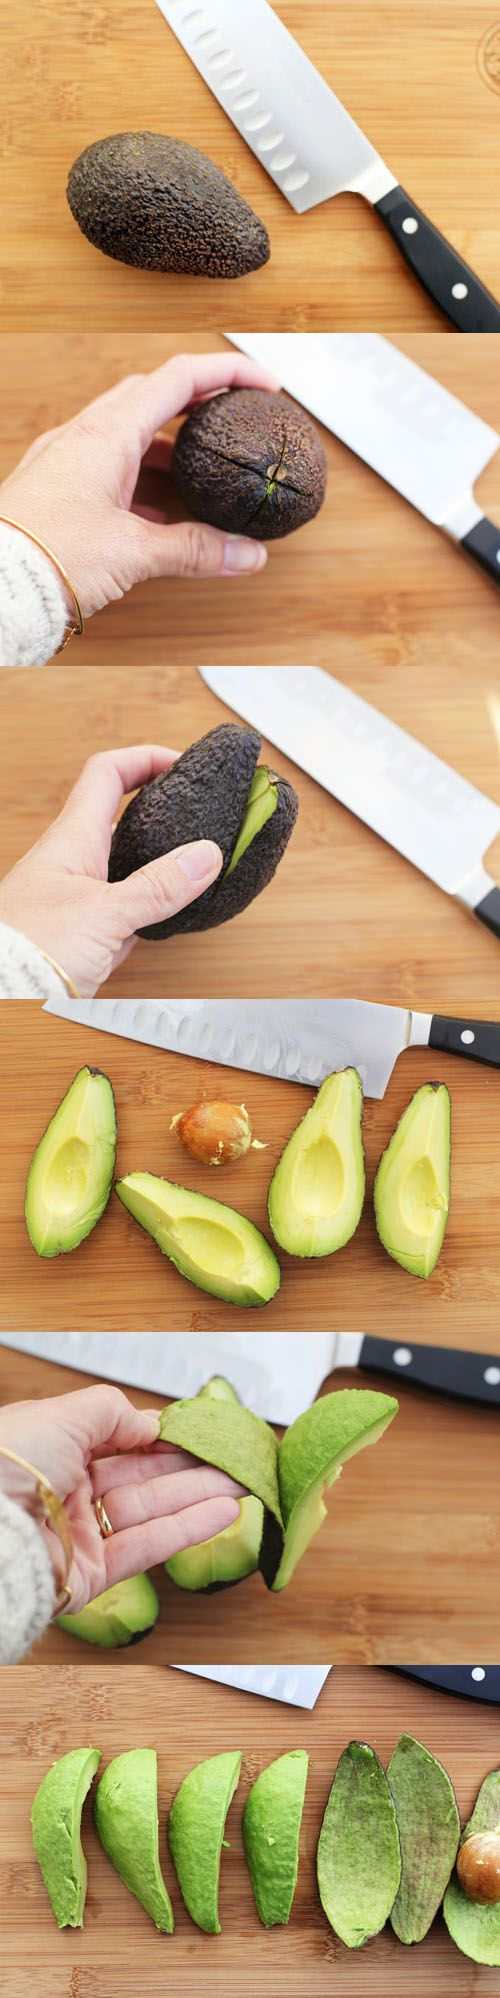 pitting and cutting avocados by @AbdulAziz Bukhamseen Week for Dinner - post includes a video to show the technique